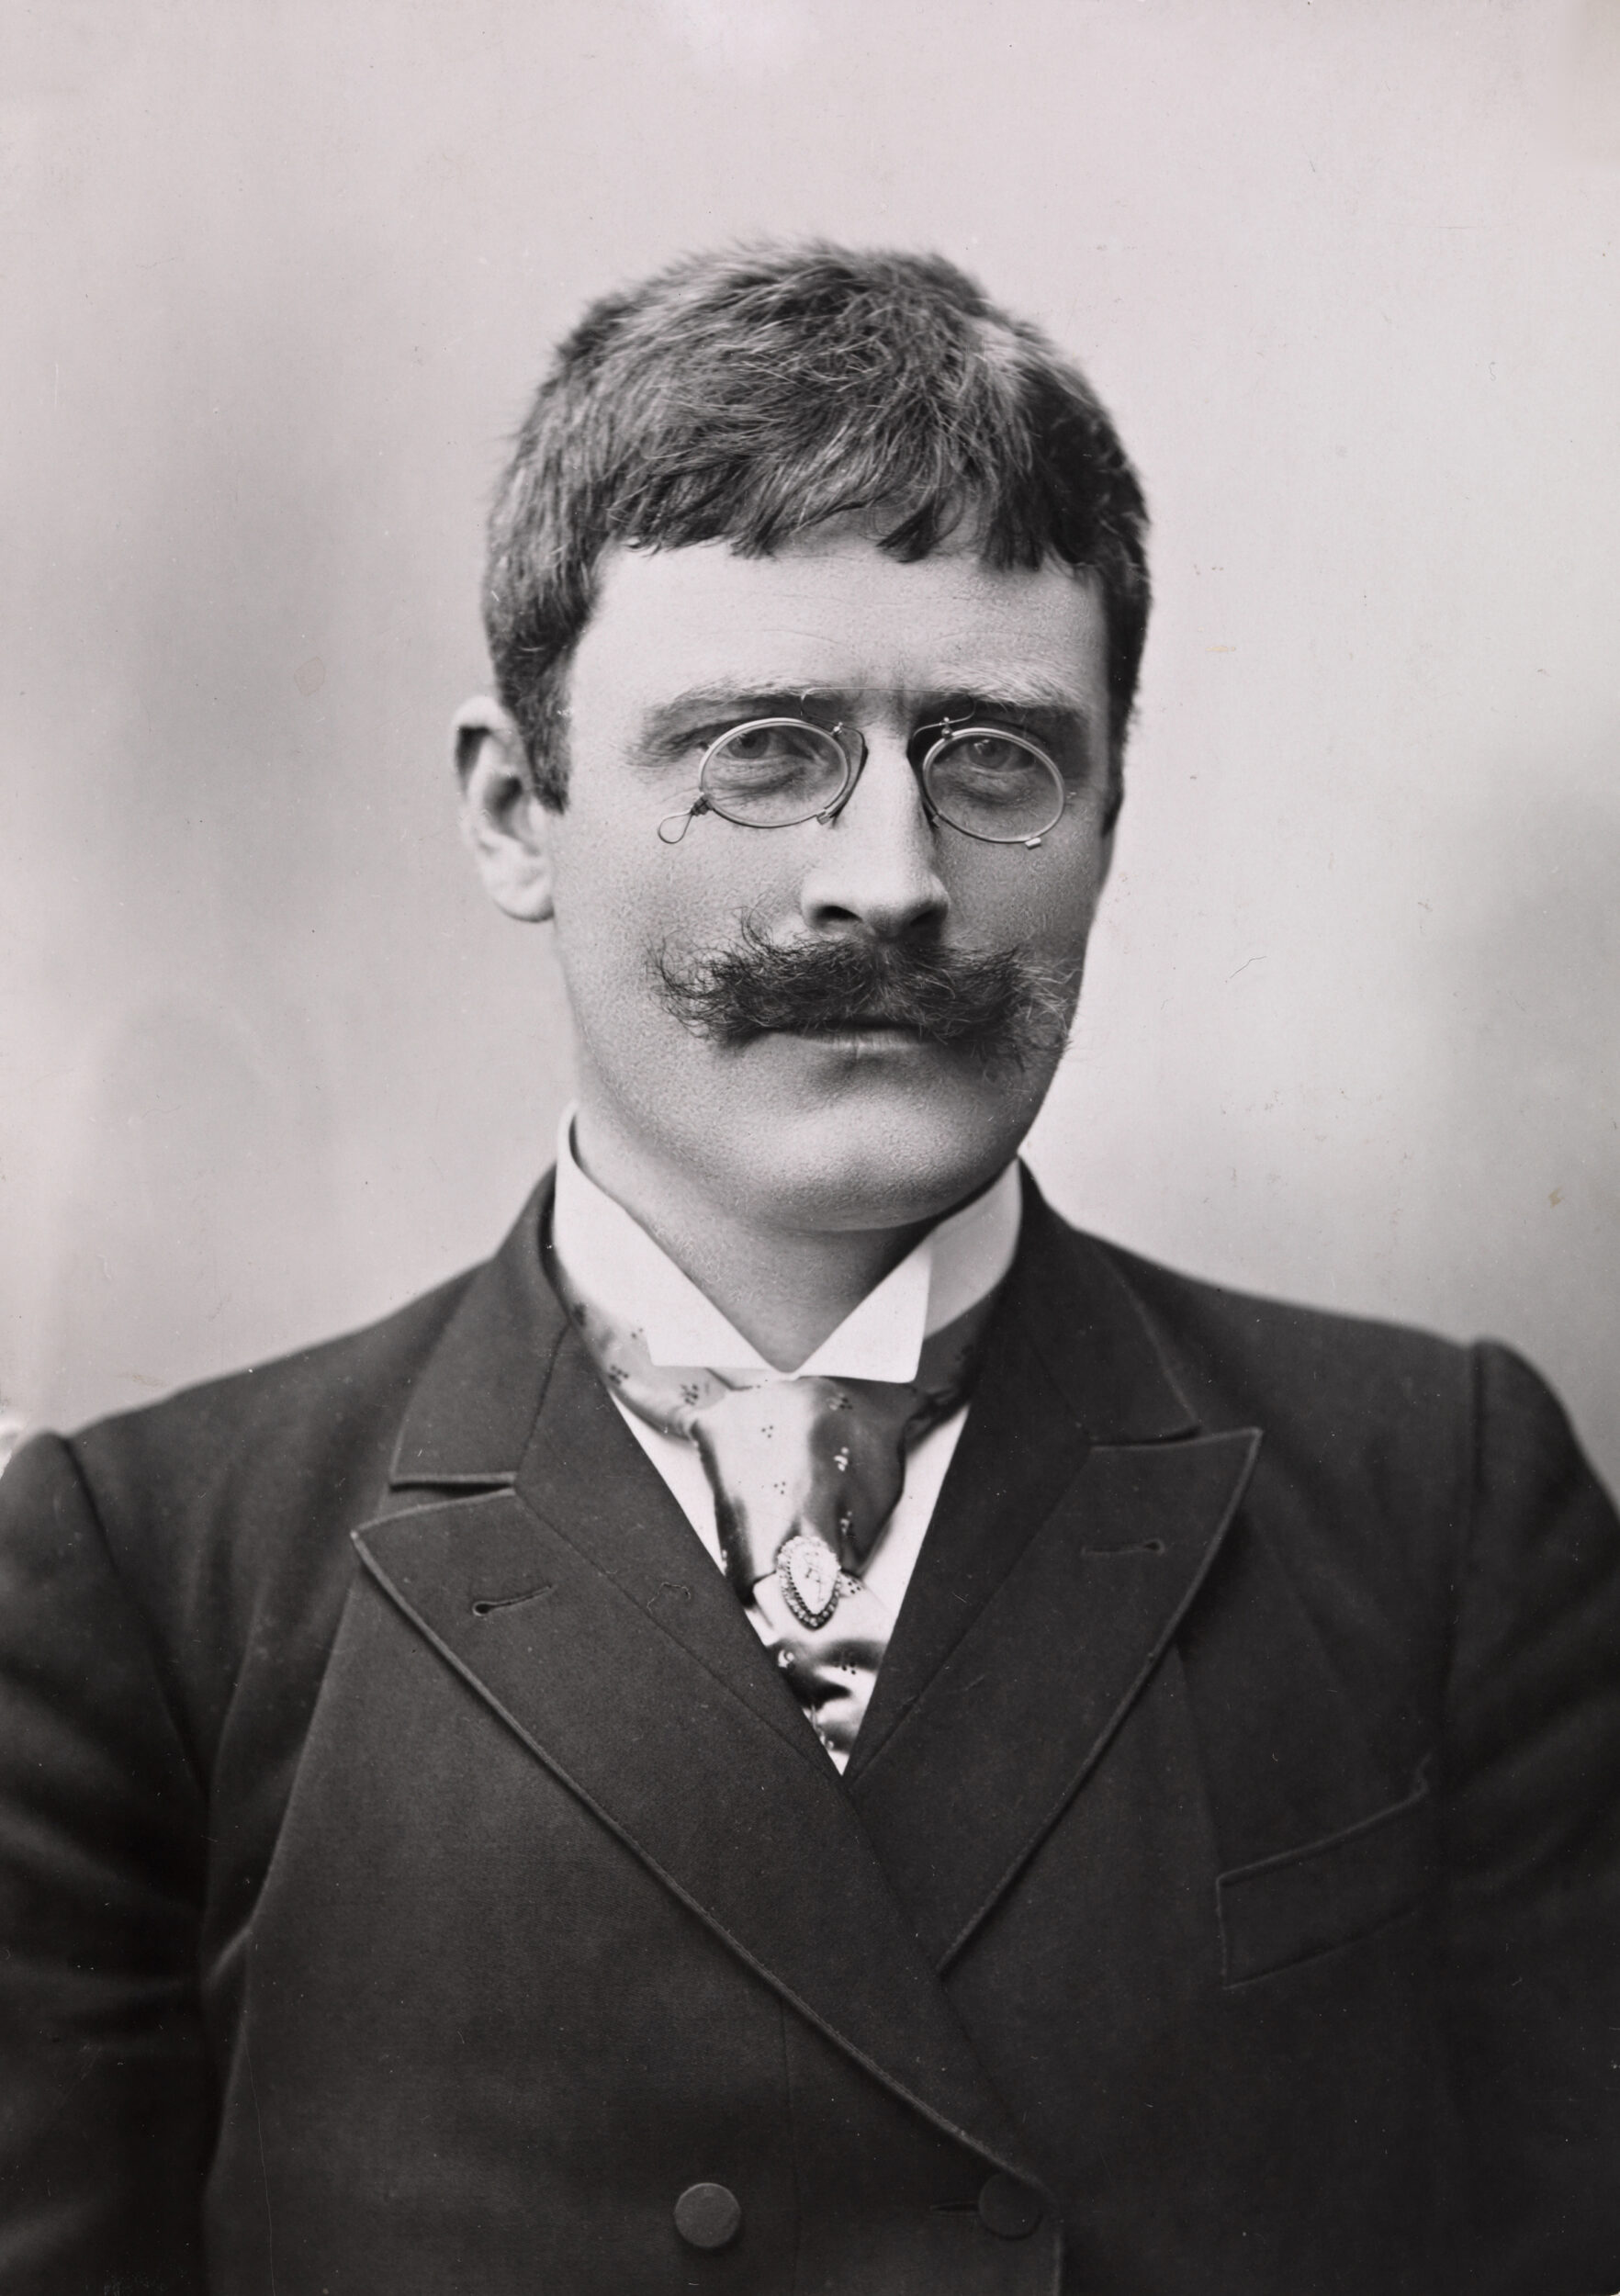 Knut Hamsun (August 4, 1859 – February 19, 1952) was a Norwegian author, who was awarded the Nobel Prize in Literature in 1920